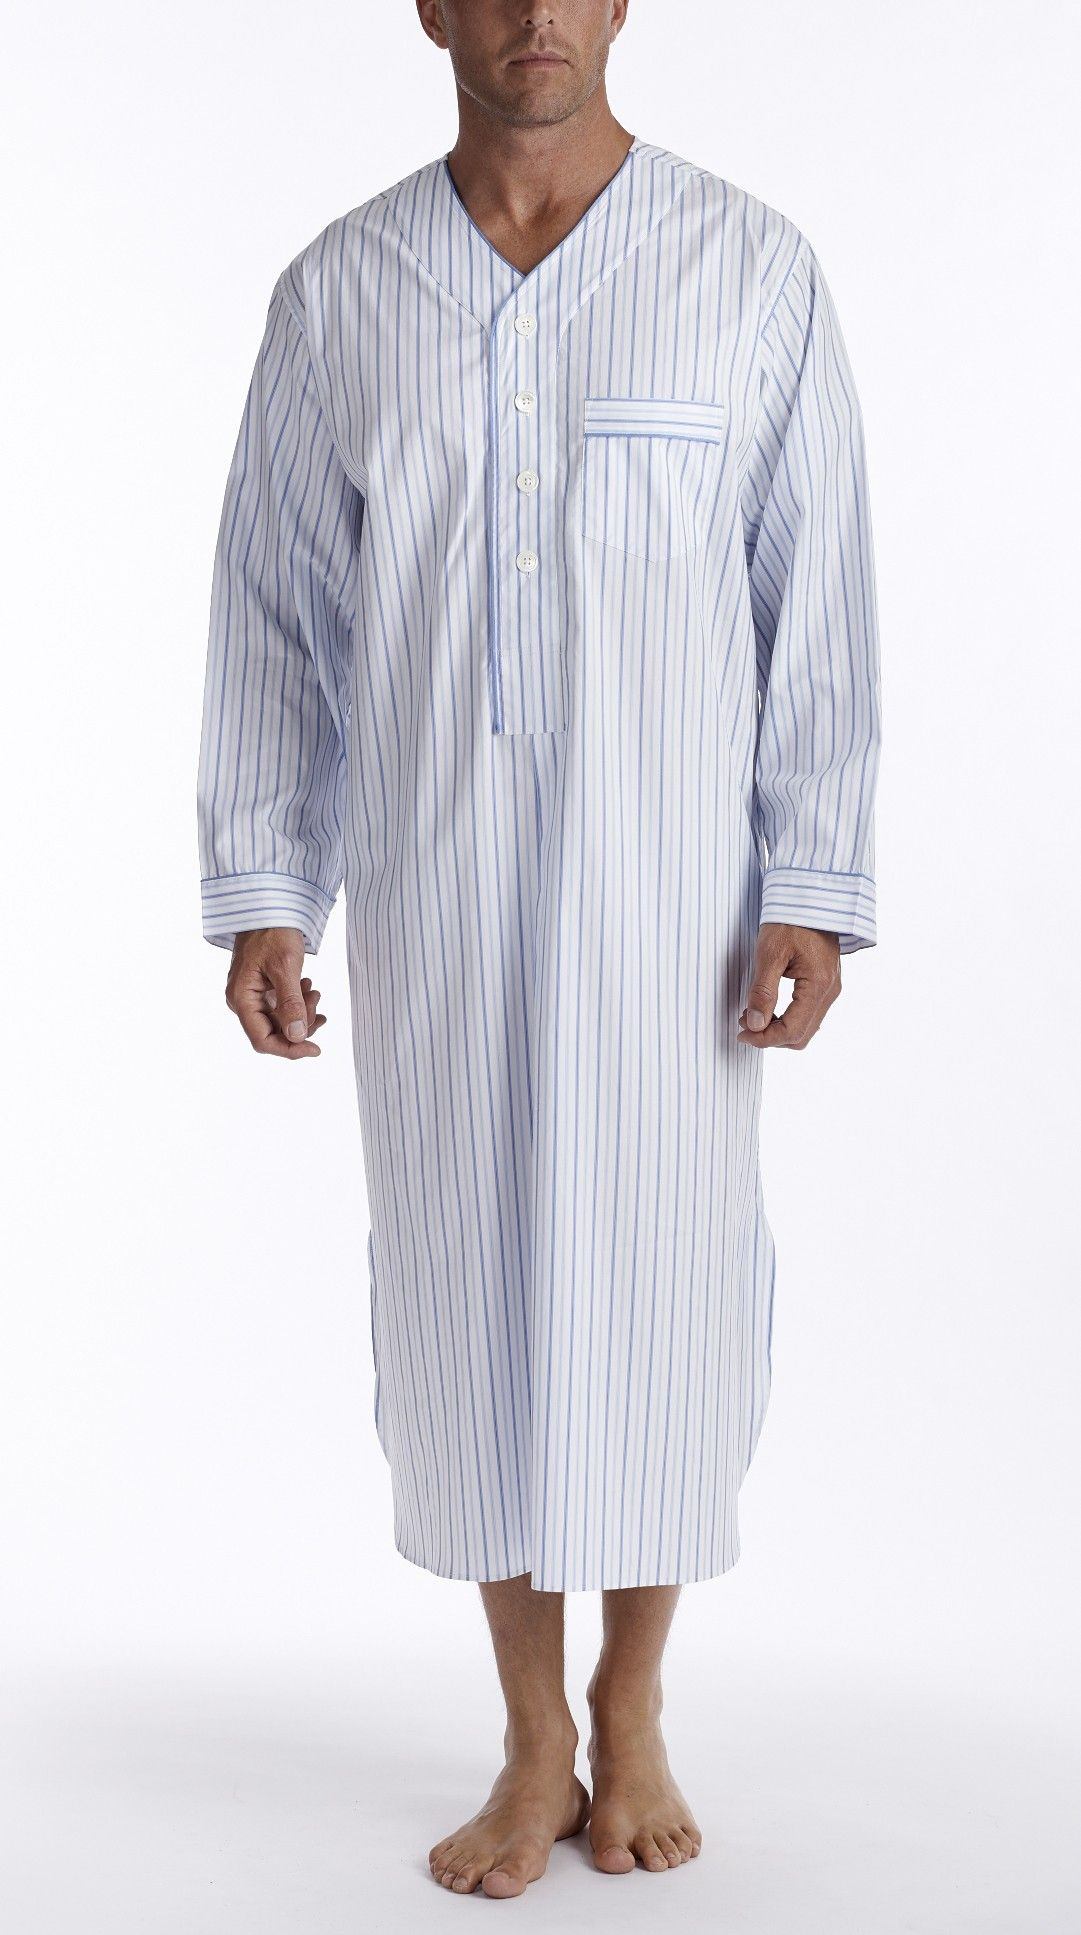 Men 39 S Sleepwear Nightshirts Mid Ocean Men 39 S Nightshirt: long cotton sleep shirts